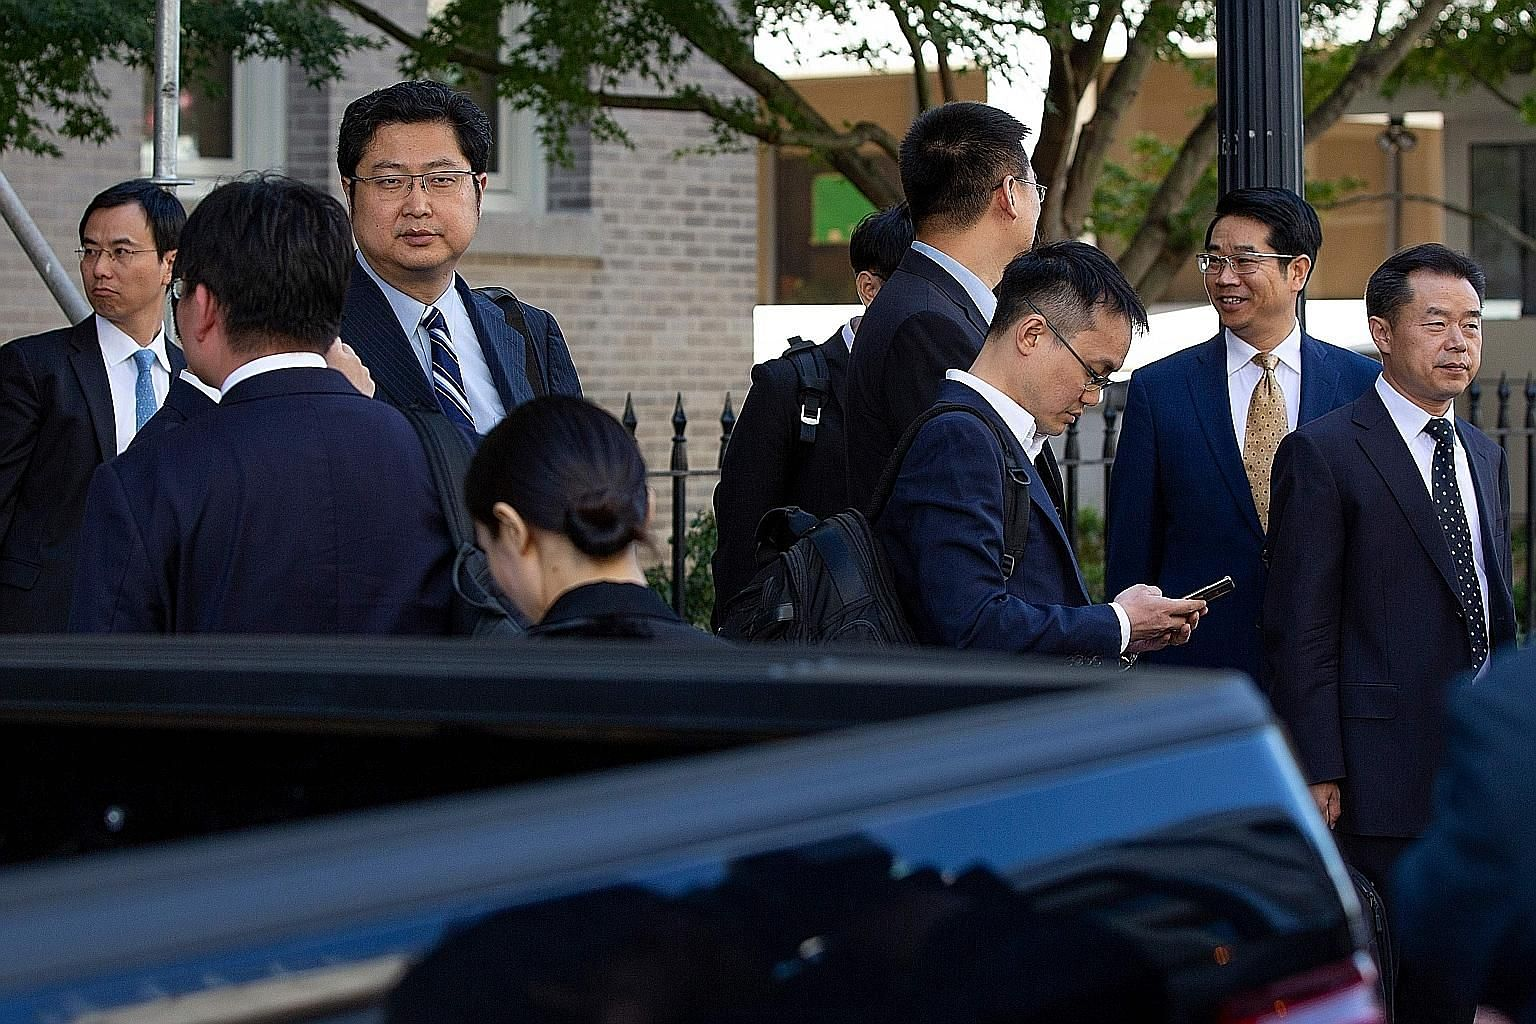 Members of the Chinese delegation waiting to leave after deputy-level trade talks in Washington on Thursday. The talks are expected to lay the groundwork for top-level negotiations next month.